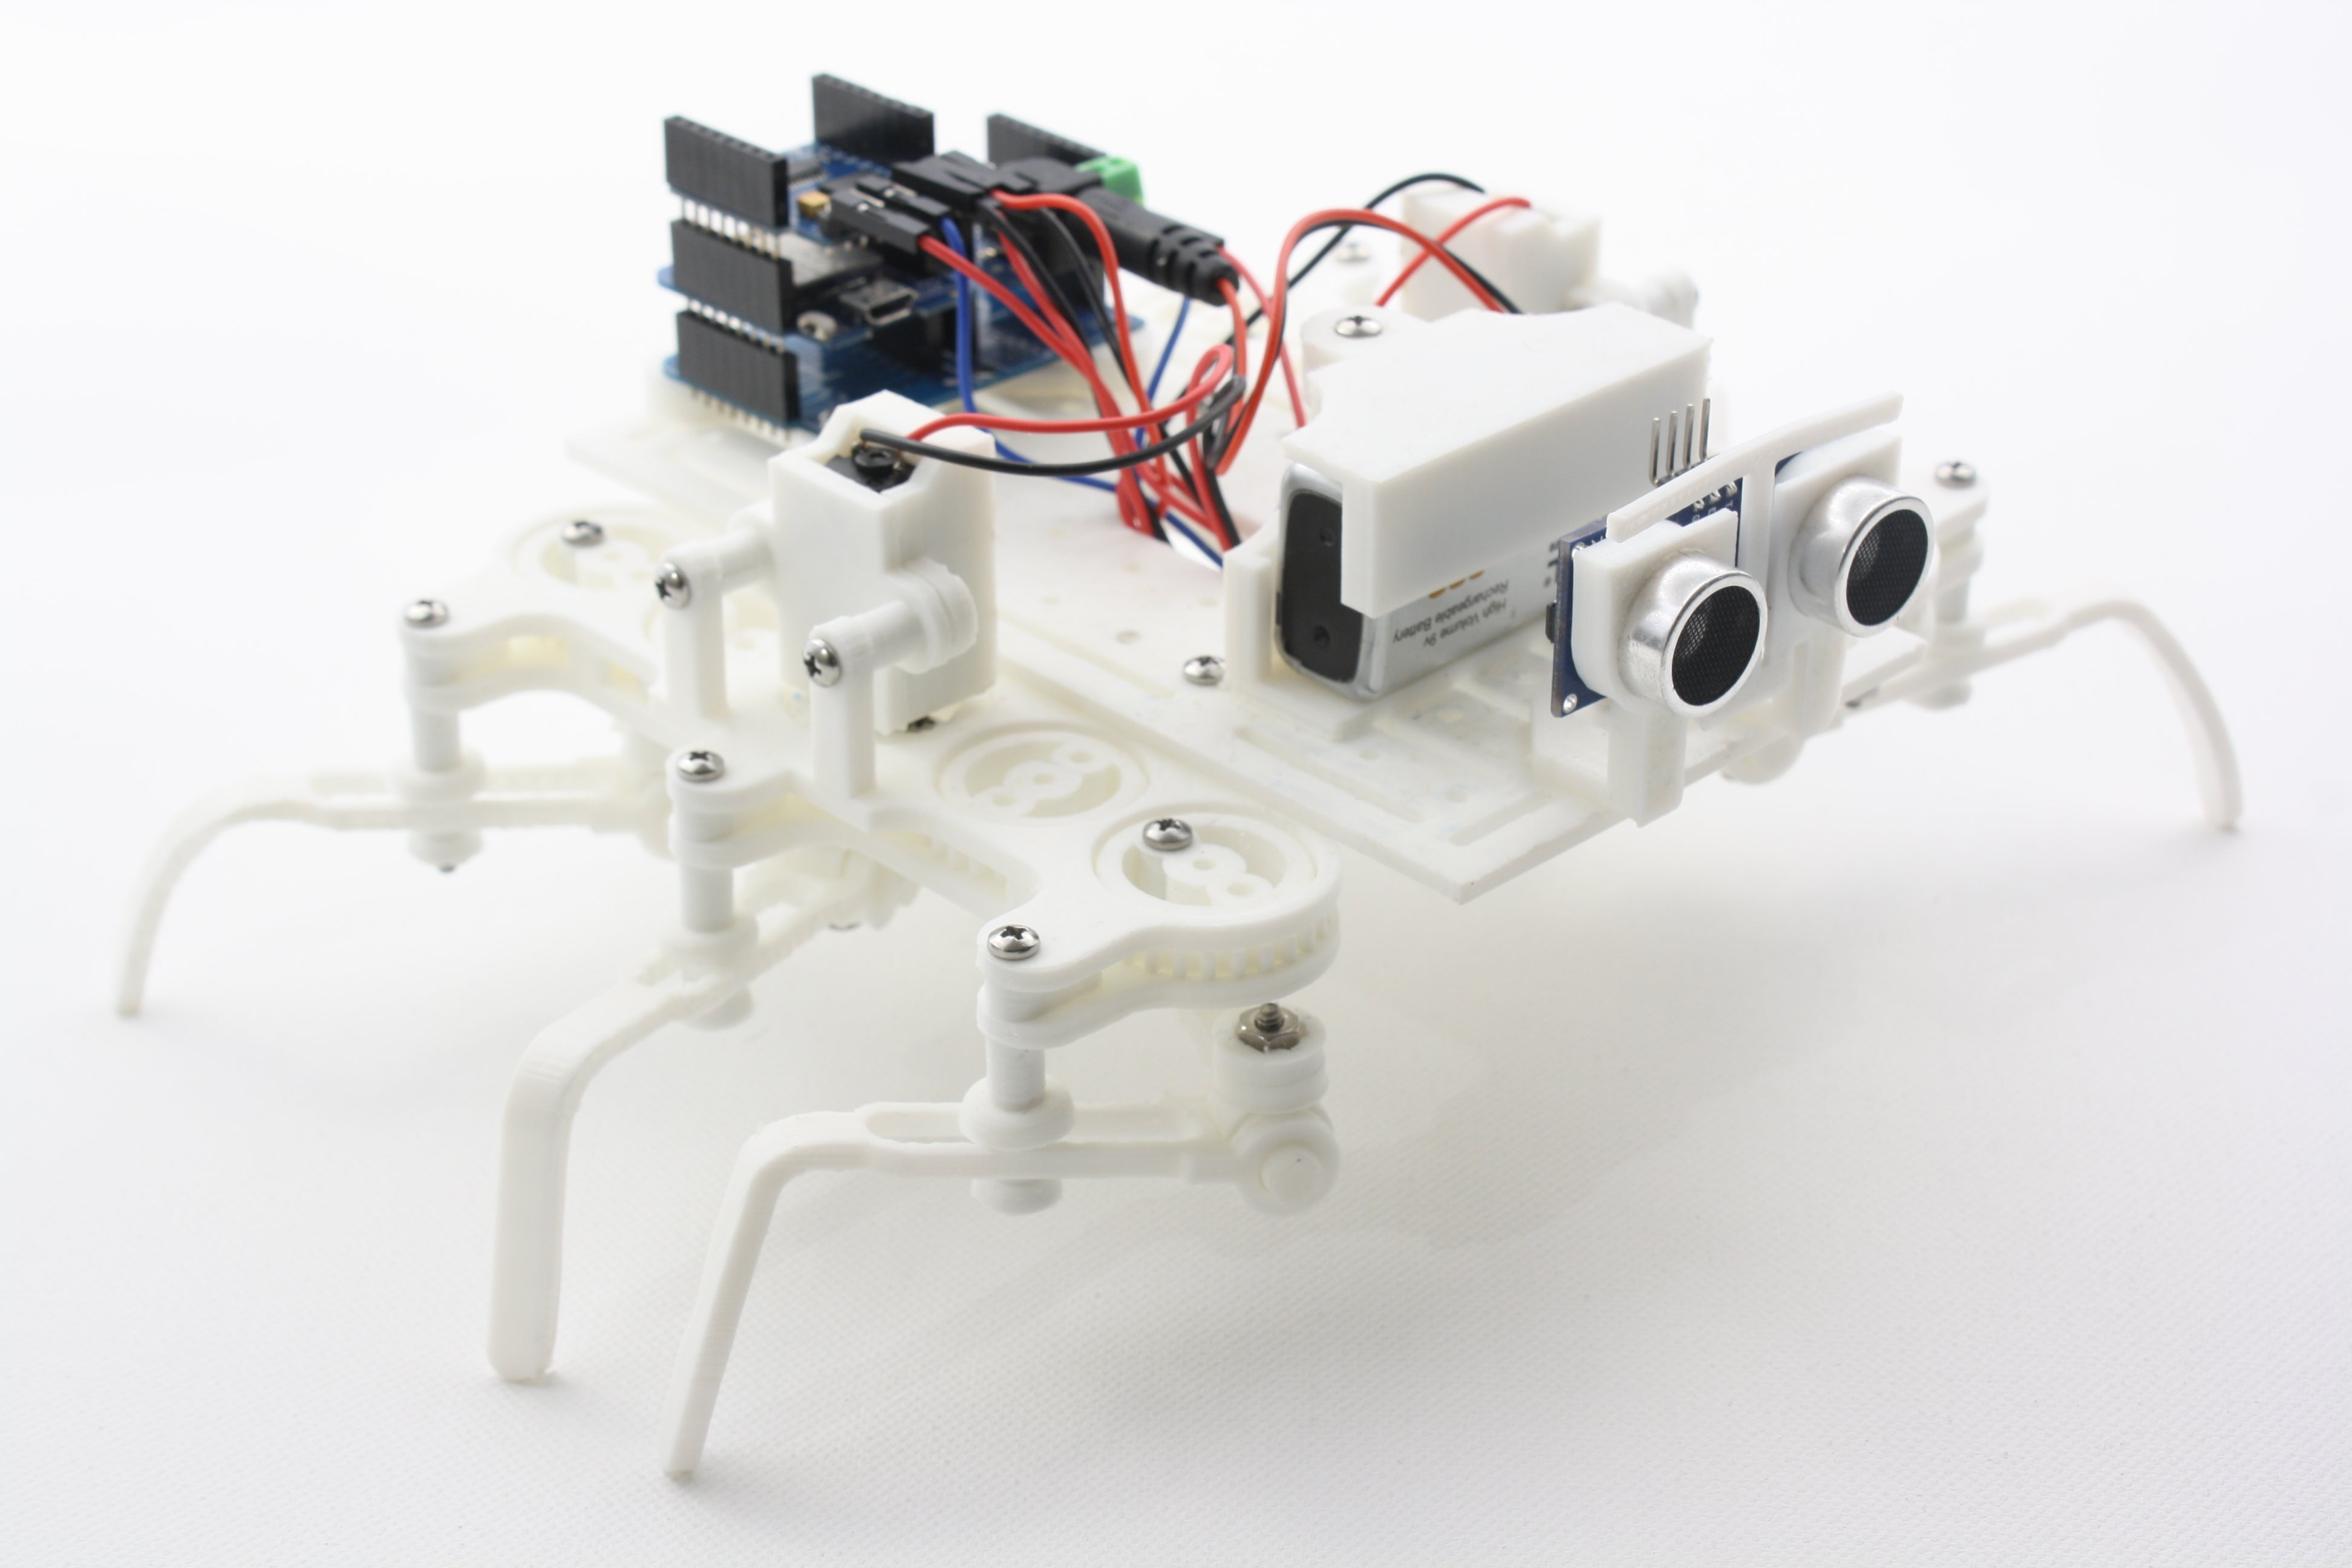 Beetle Robot from Gadgets That Go